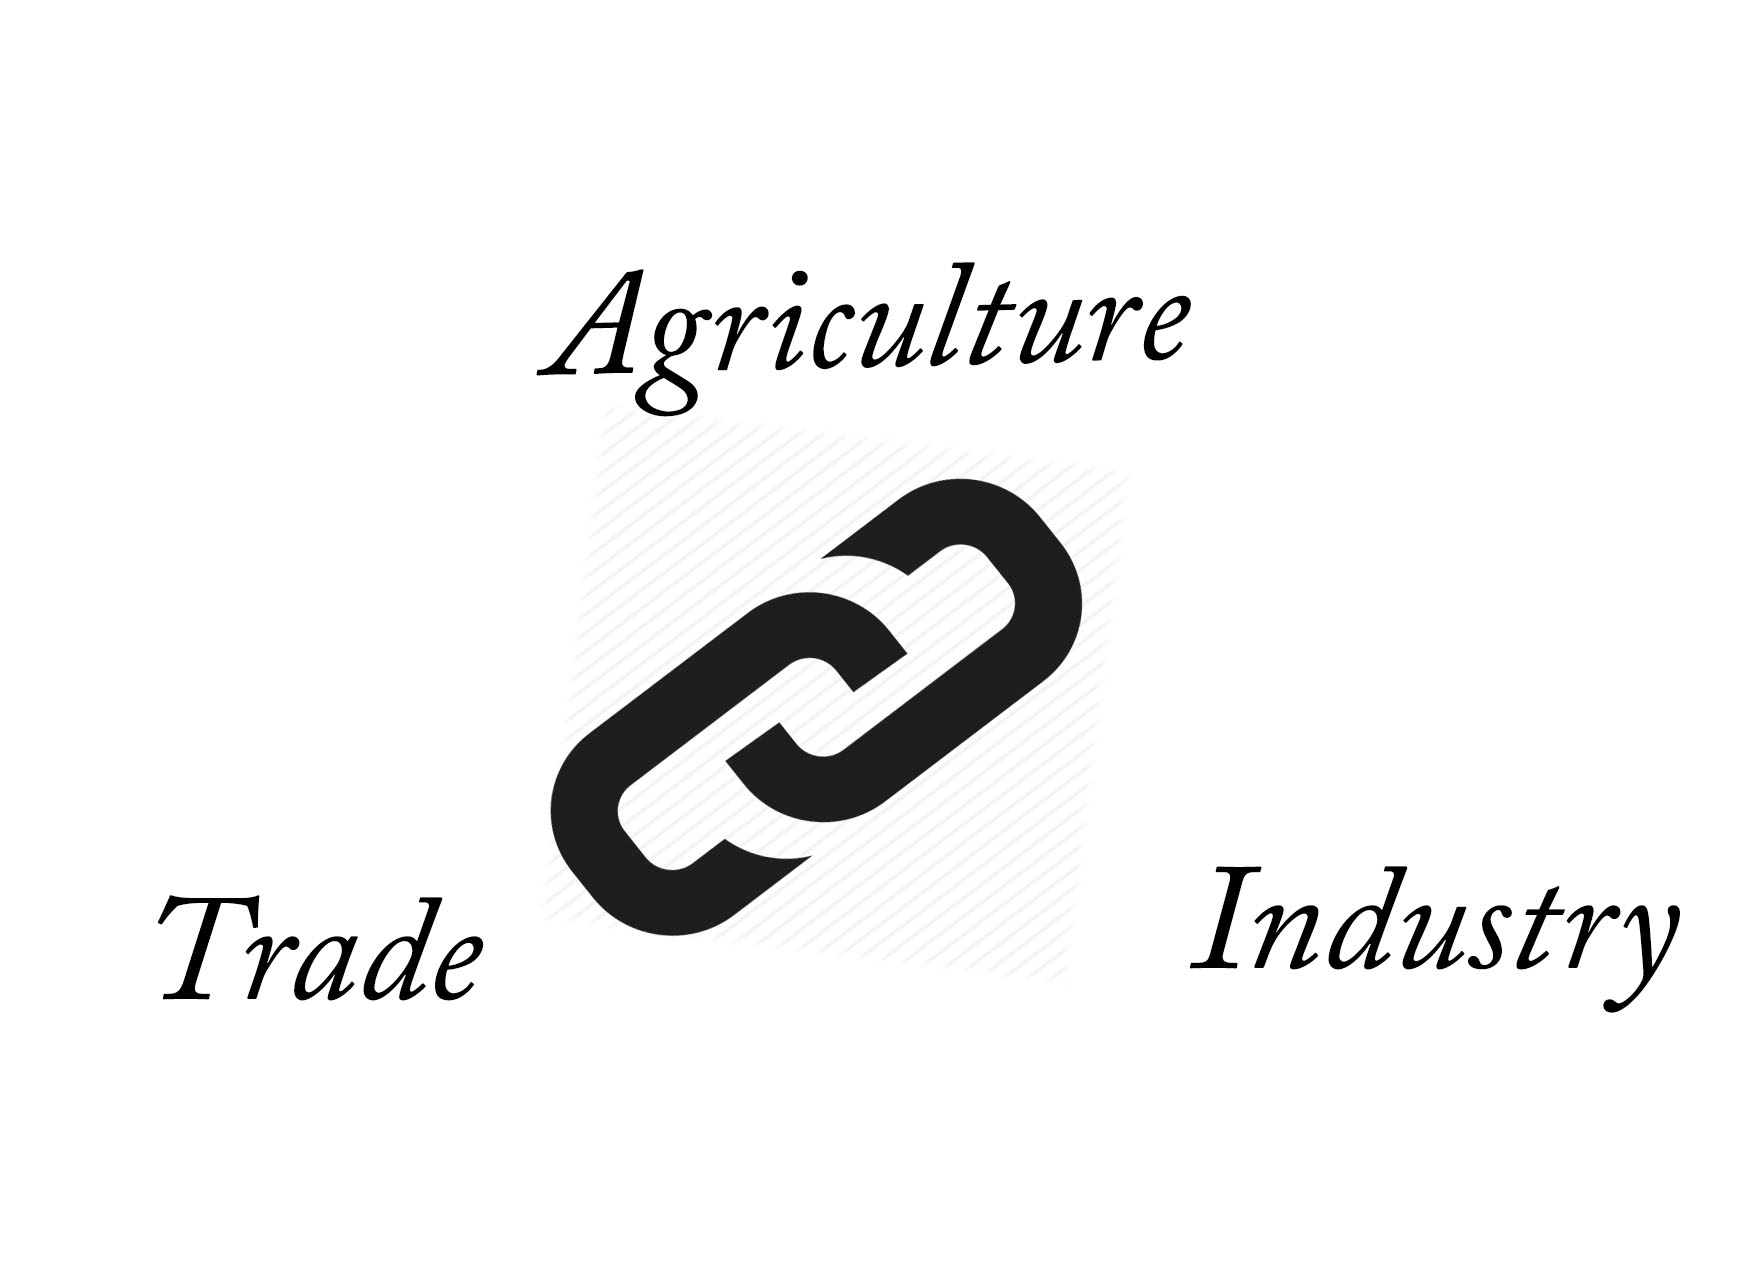 Relation among Agriculture, Industry and Trade